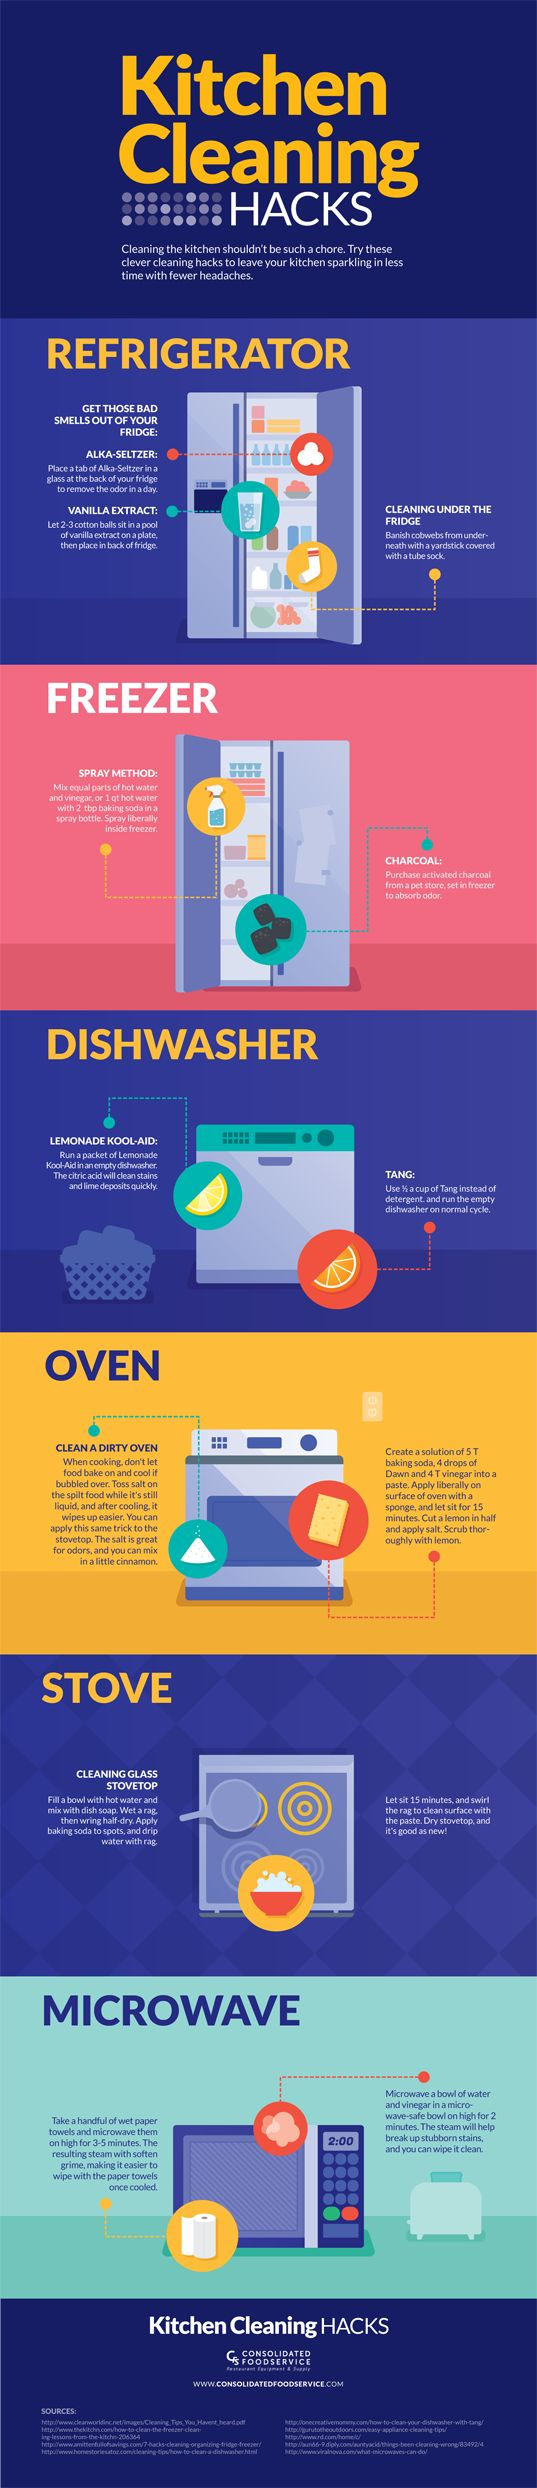 INFOGRAPHIC: Eco-savvy hacks for cleaning your kitchen by Consolidated Food Service